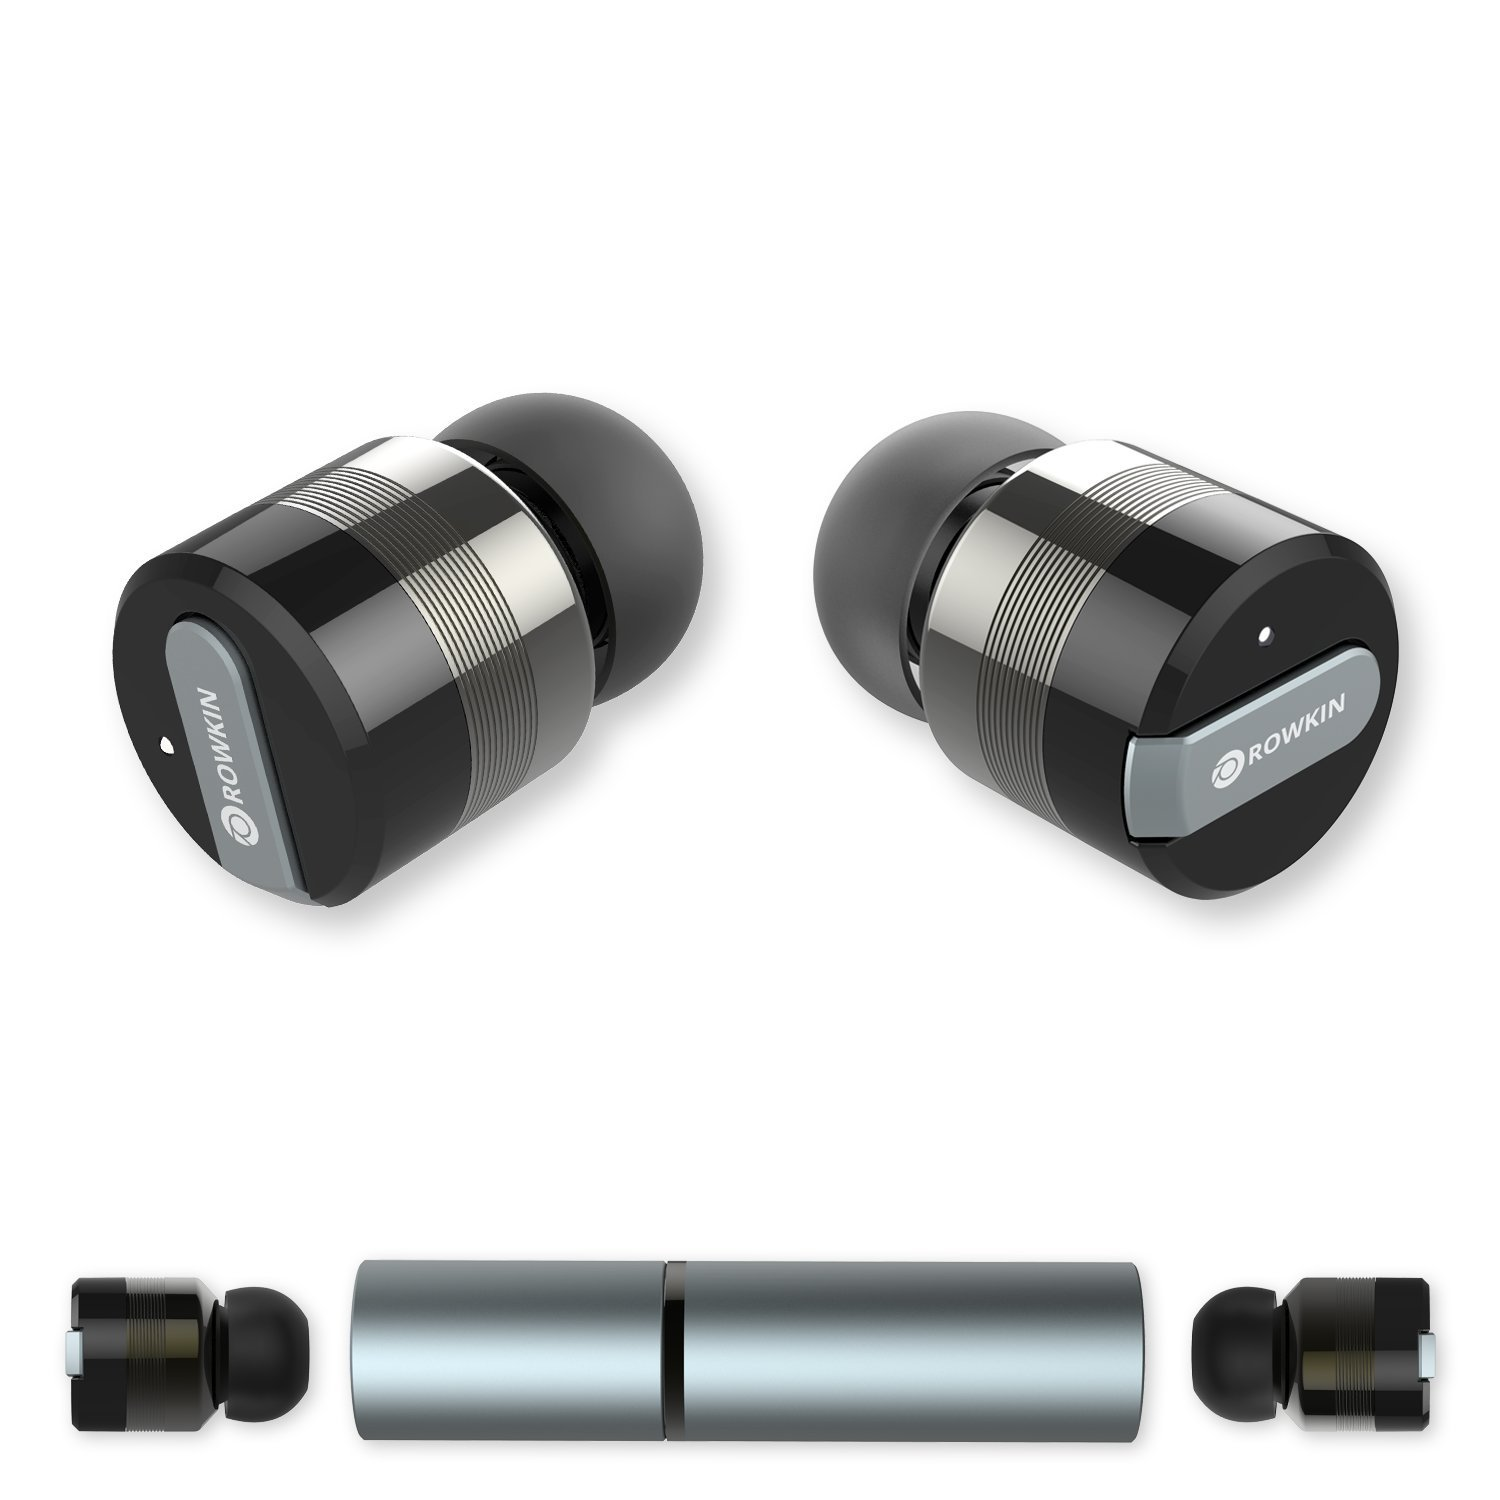 Bluetooth Headphones Rowkin Bit Stereo Wireless Earbuds ...